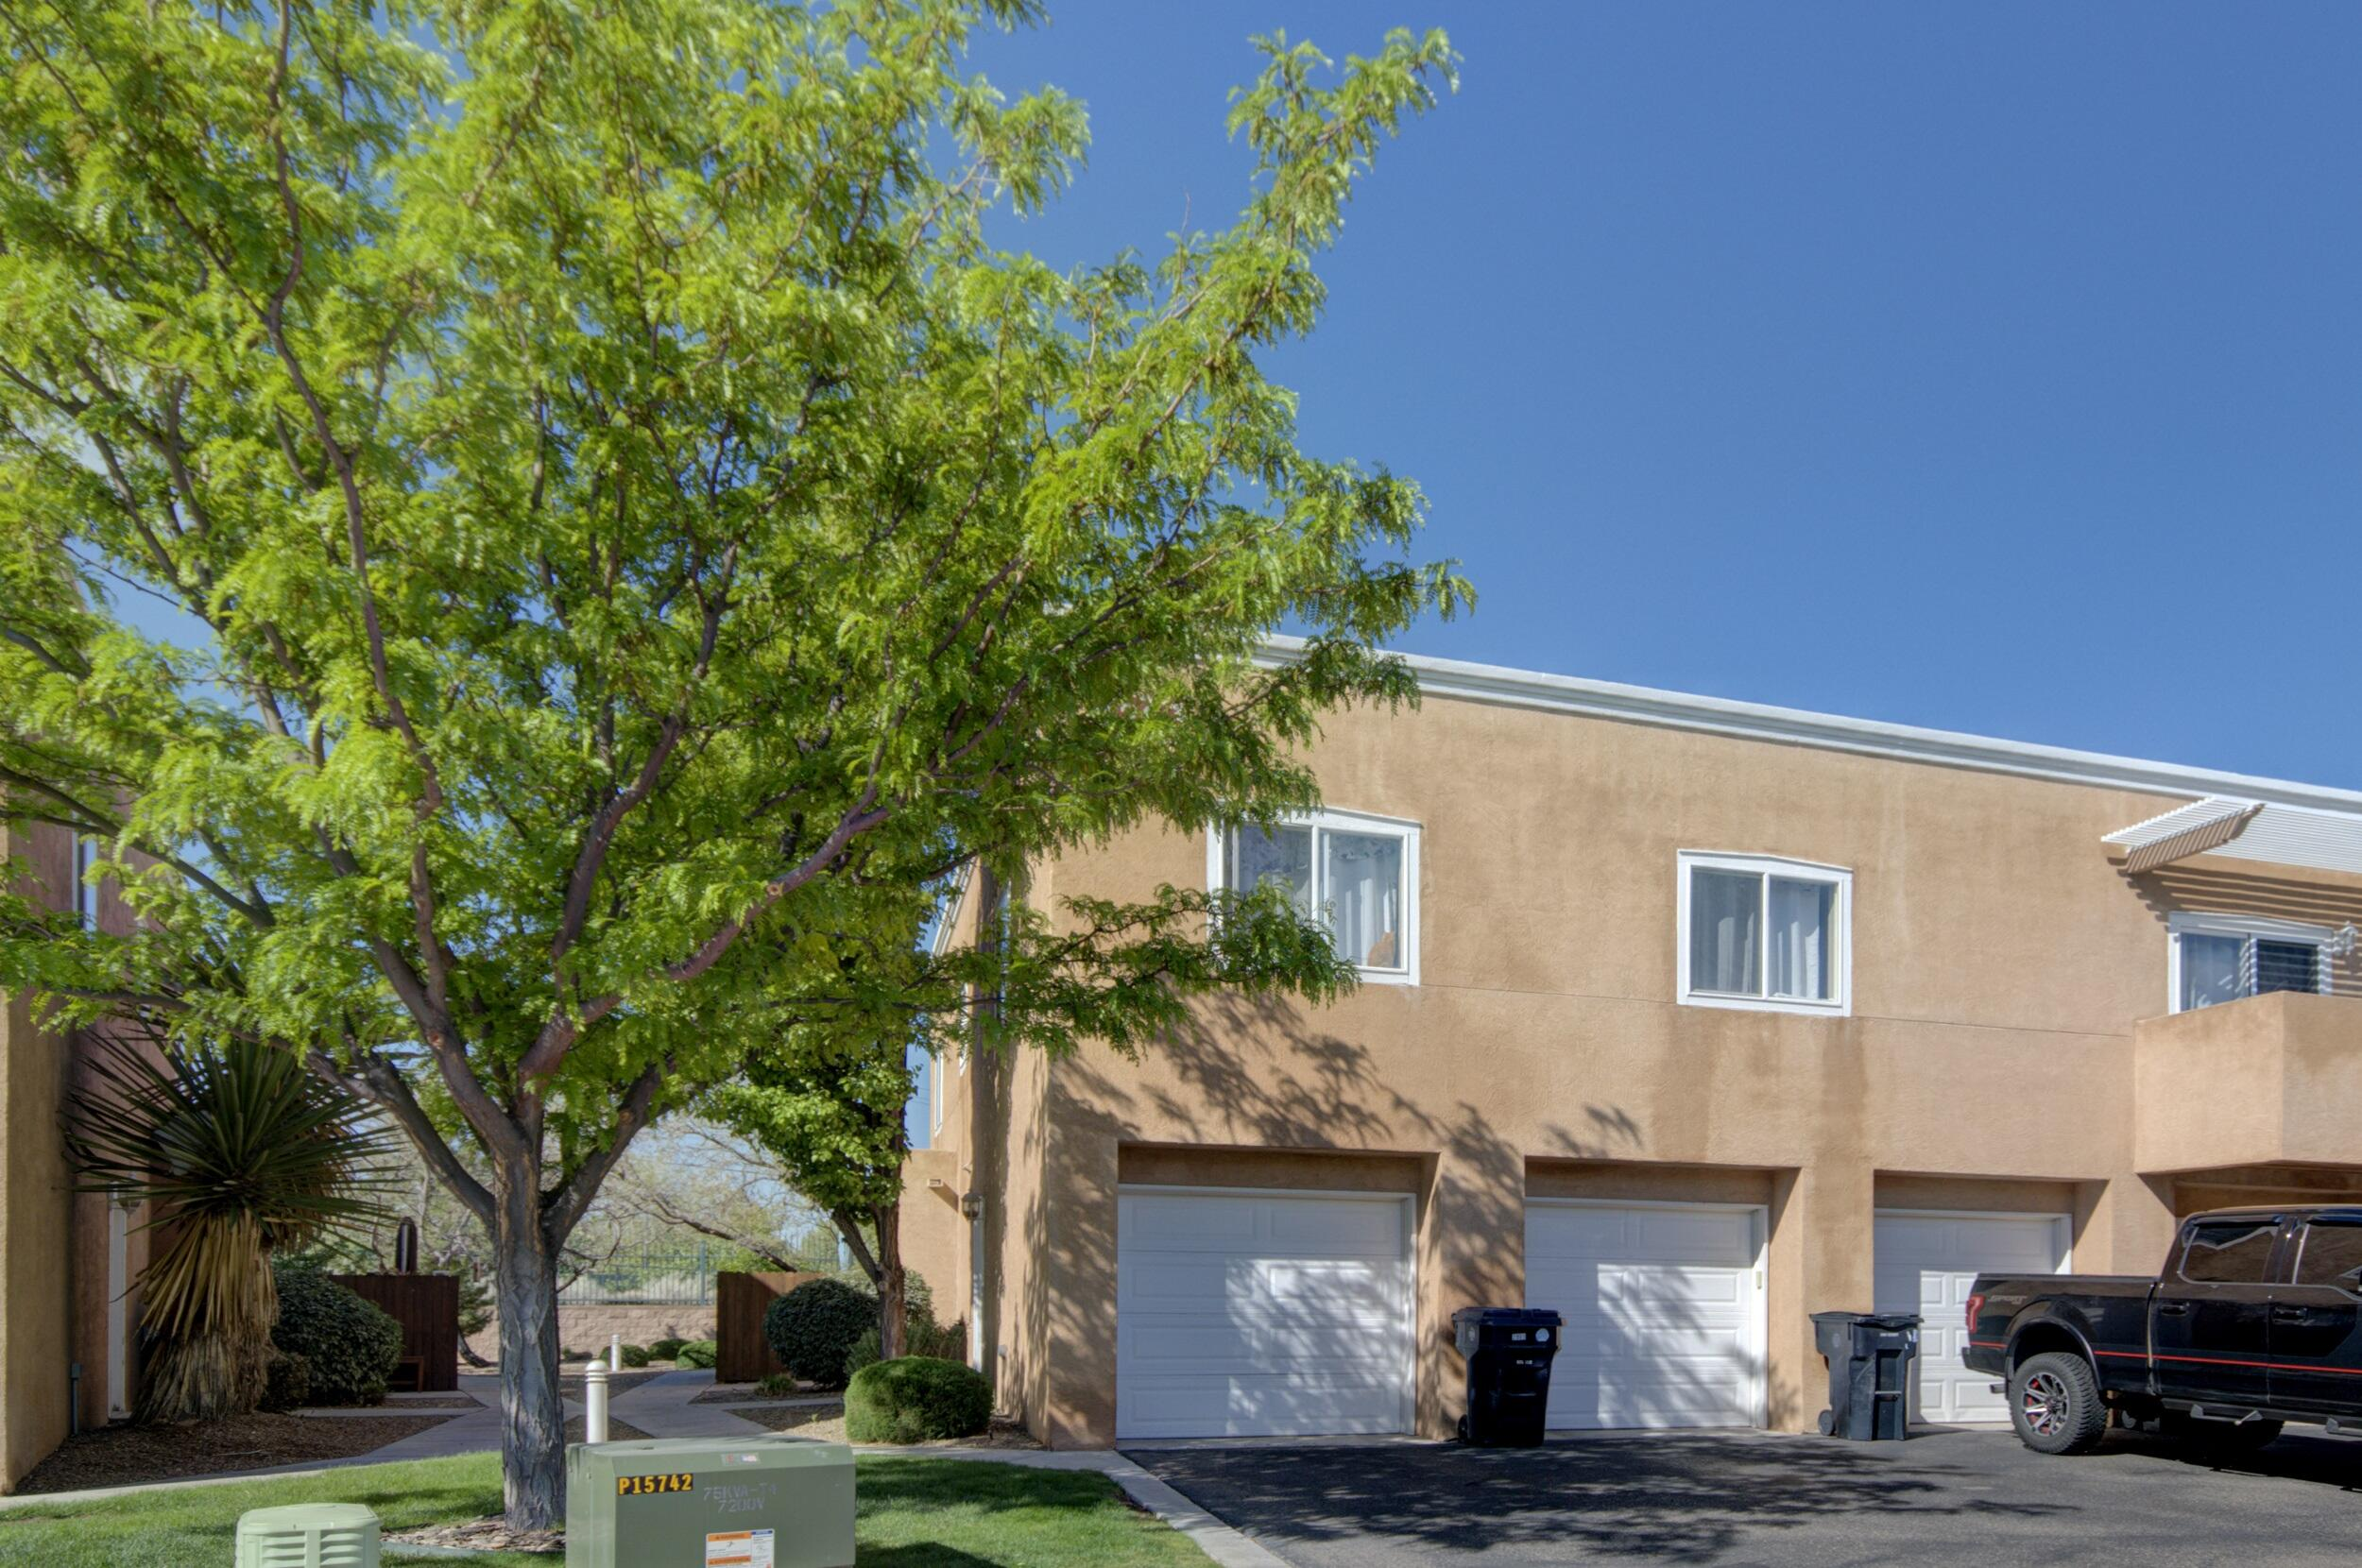 ****SOLD BEFORE LISTING!!*****Very quite and peaceful Condo unit in a Gated Oso Park private community. Custom Gas Fireplace, Laundry Room Attached one-car finished Garage.  Nice sized bedrooms and patio off the Living Room. HOA includes Common Areas, Lawns, Building Exteriors, Roof, Insurance, Security Gate Maintenance, Water and Refuse.